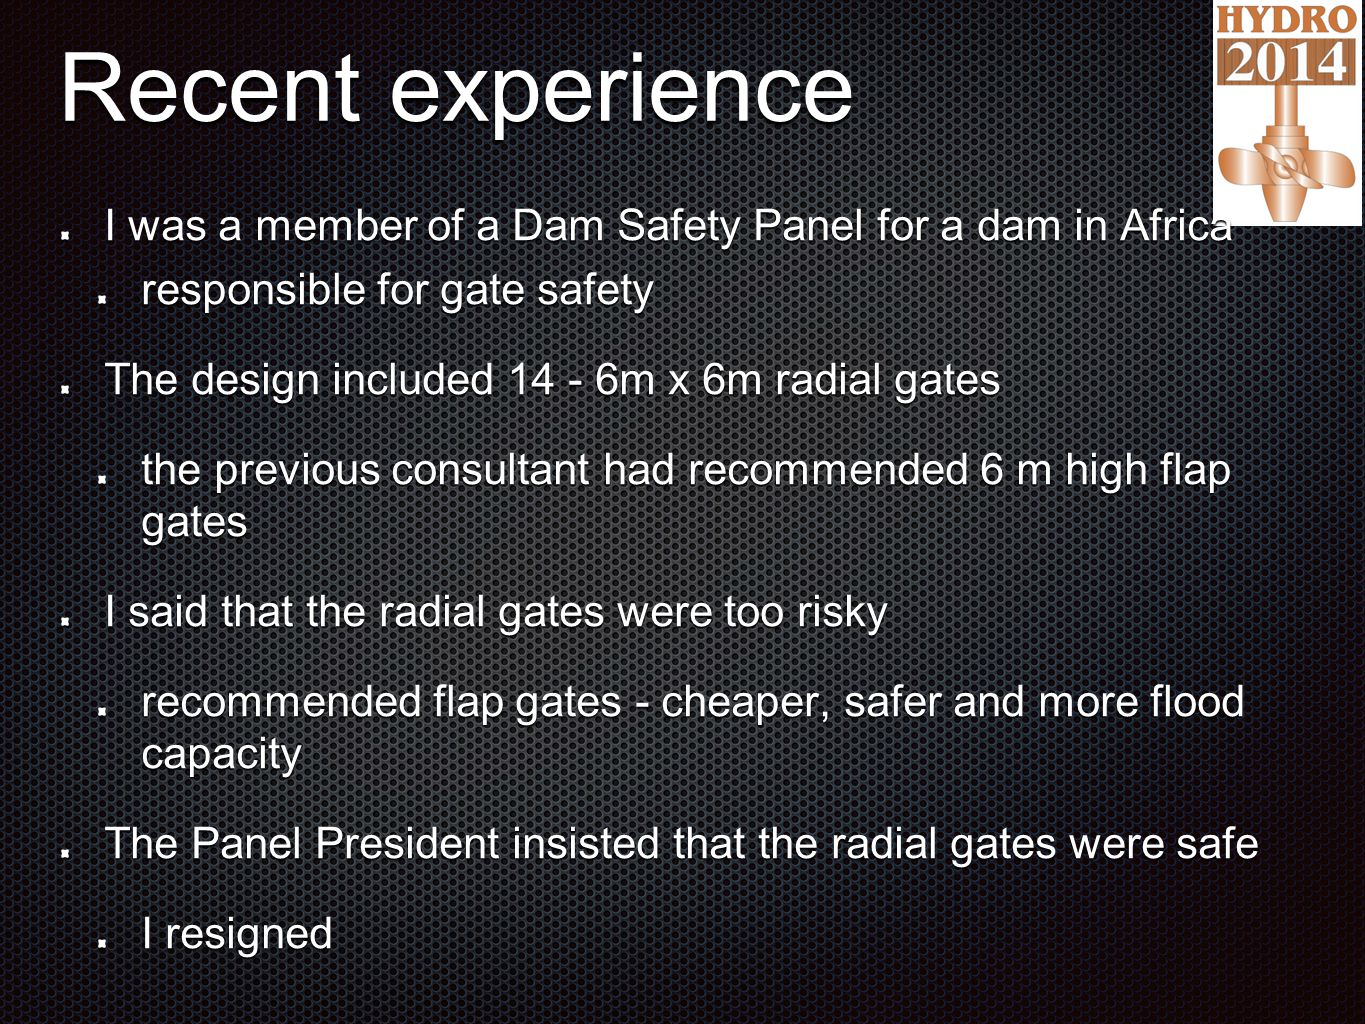 Recent experience I was a member of a Dam Safety Panel for a dam in Africa responsible for gate safety The design included 14 - 6m x 6m radial gates the previous consultant had recommended 6 m high flap gates I said that the radial gates were too risky recommended flap gates - cheaper, safer and more flood capacity The Panel President insisted that the radial gates were safe I resigned